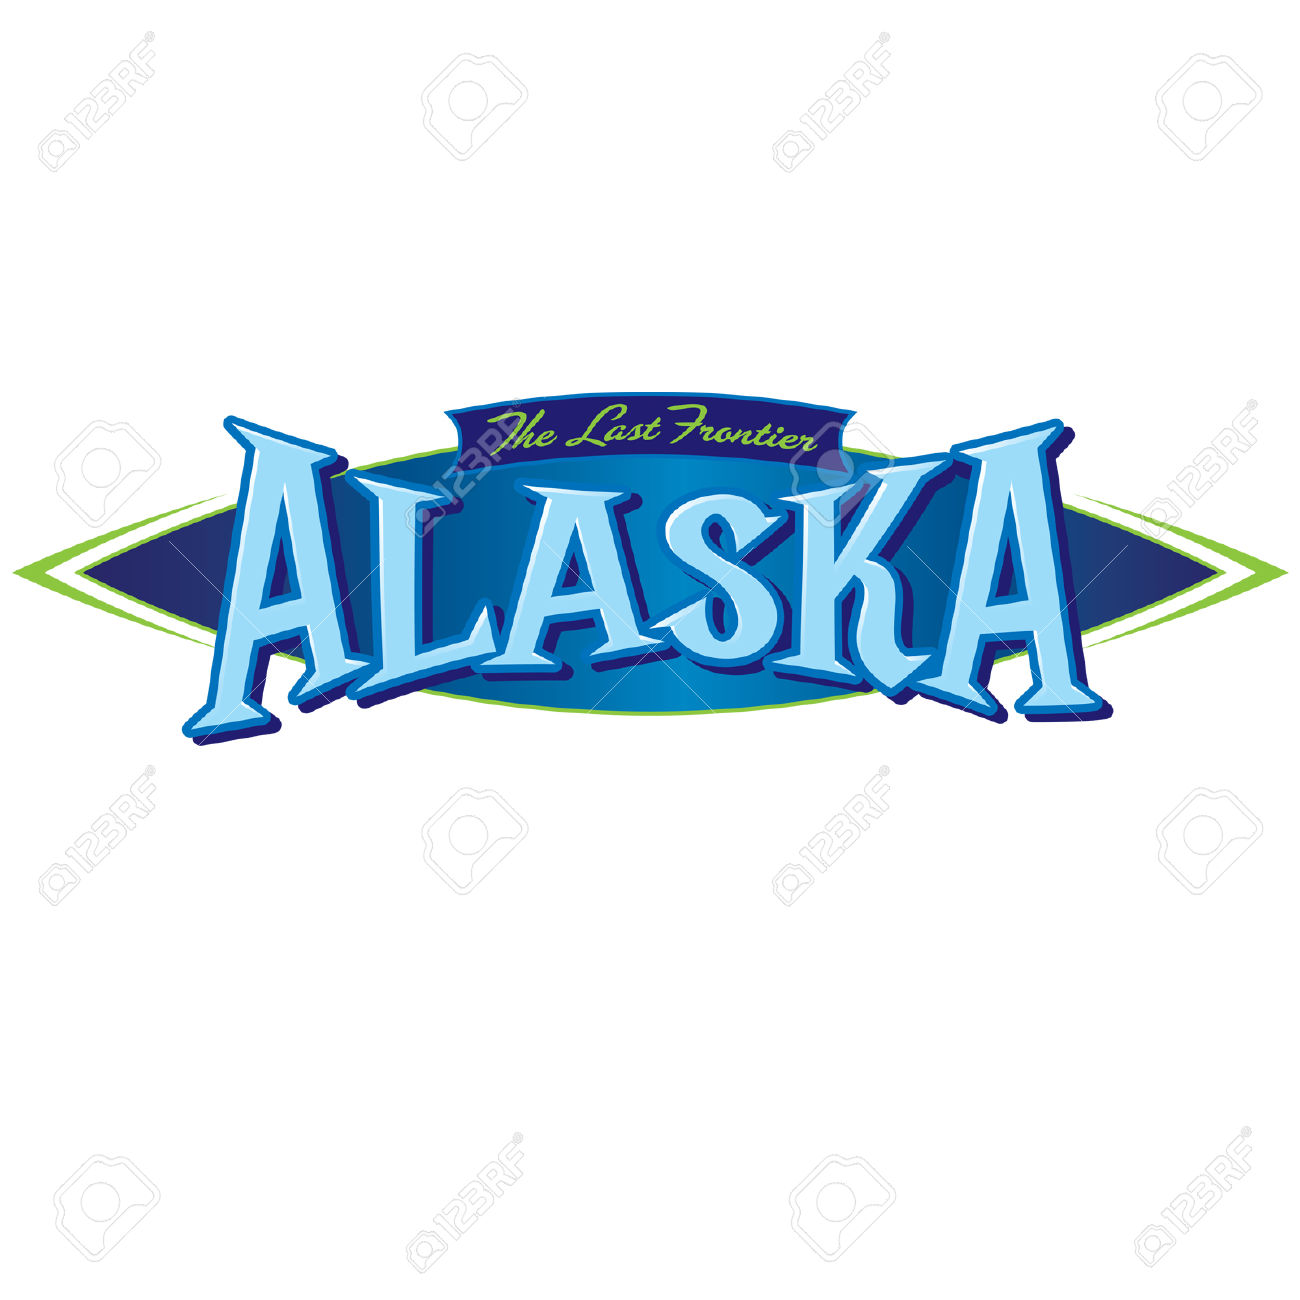 Alaska clipart vector. Frontiers clipground